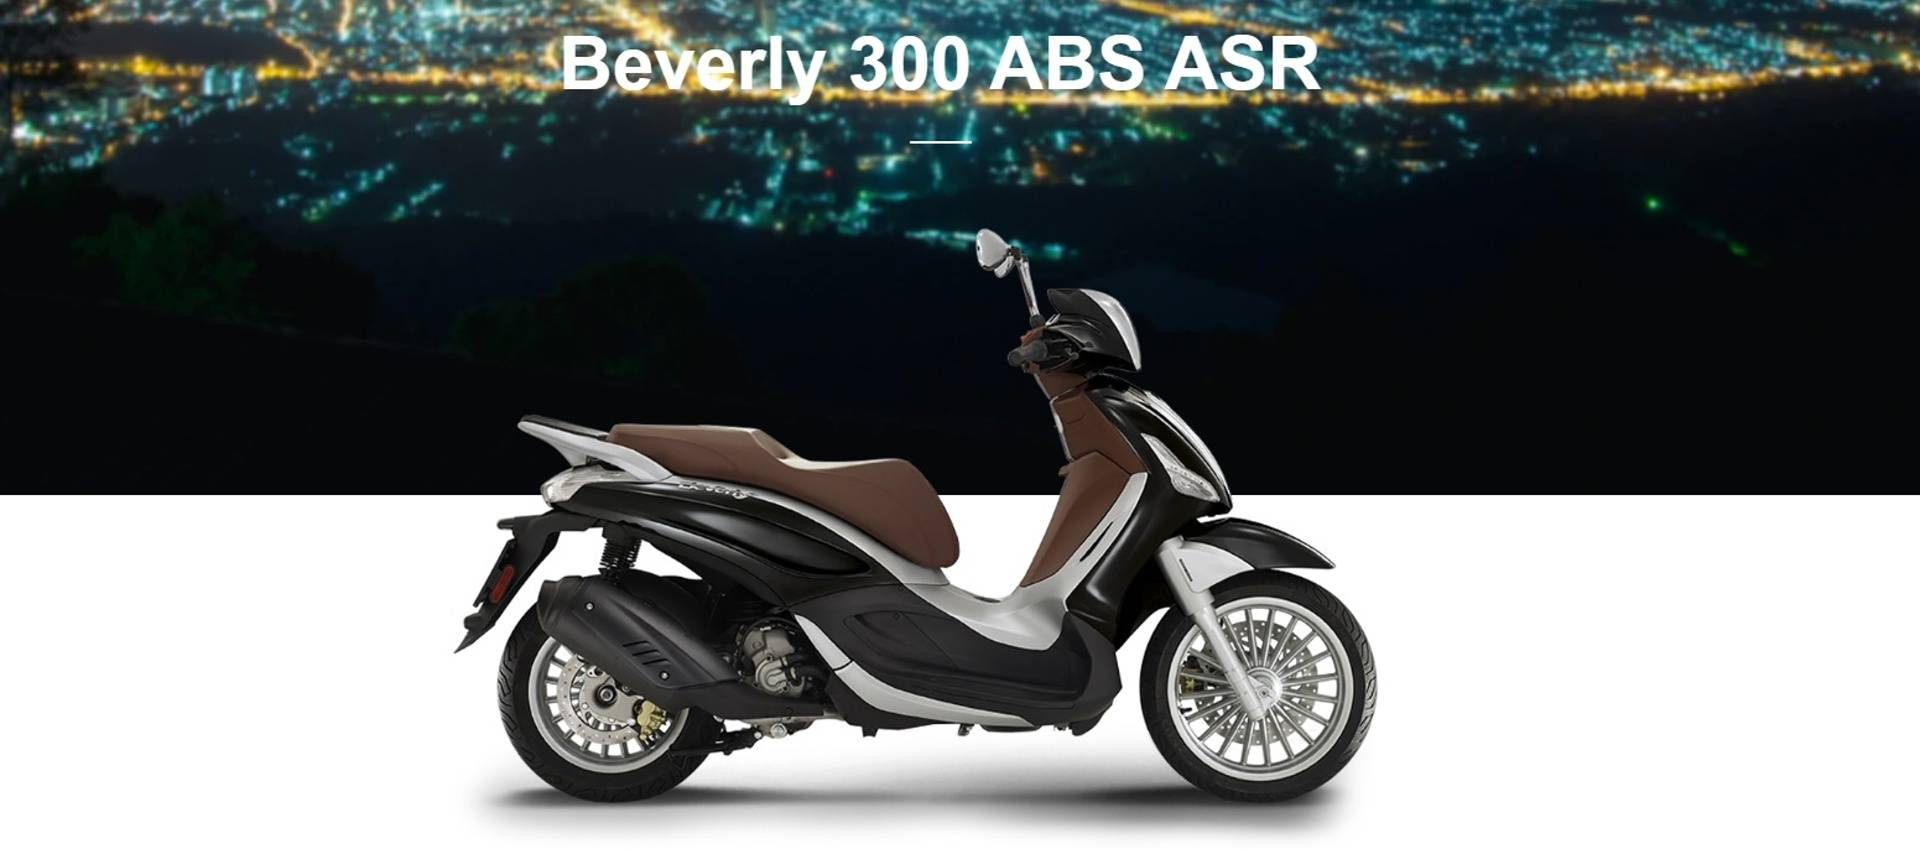 Beverly 300 ABS ASR